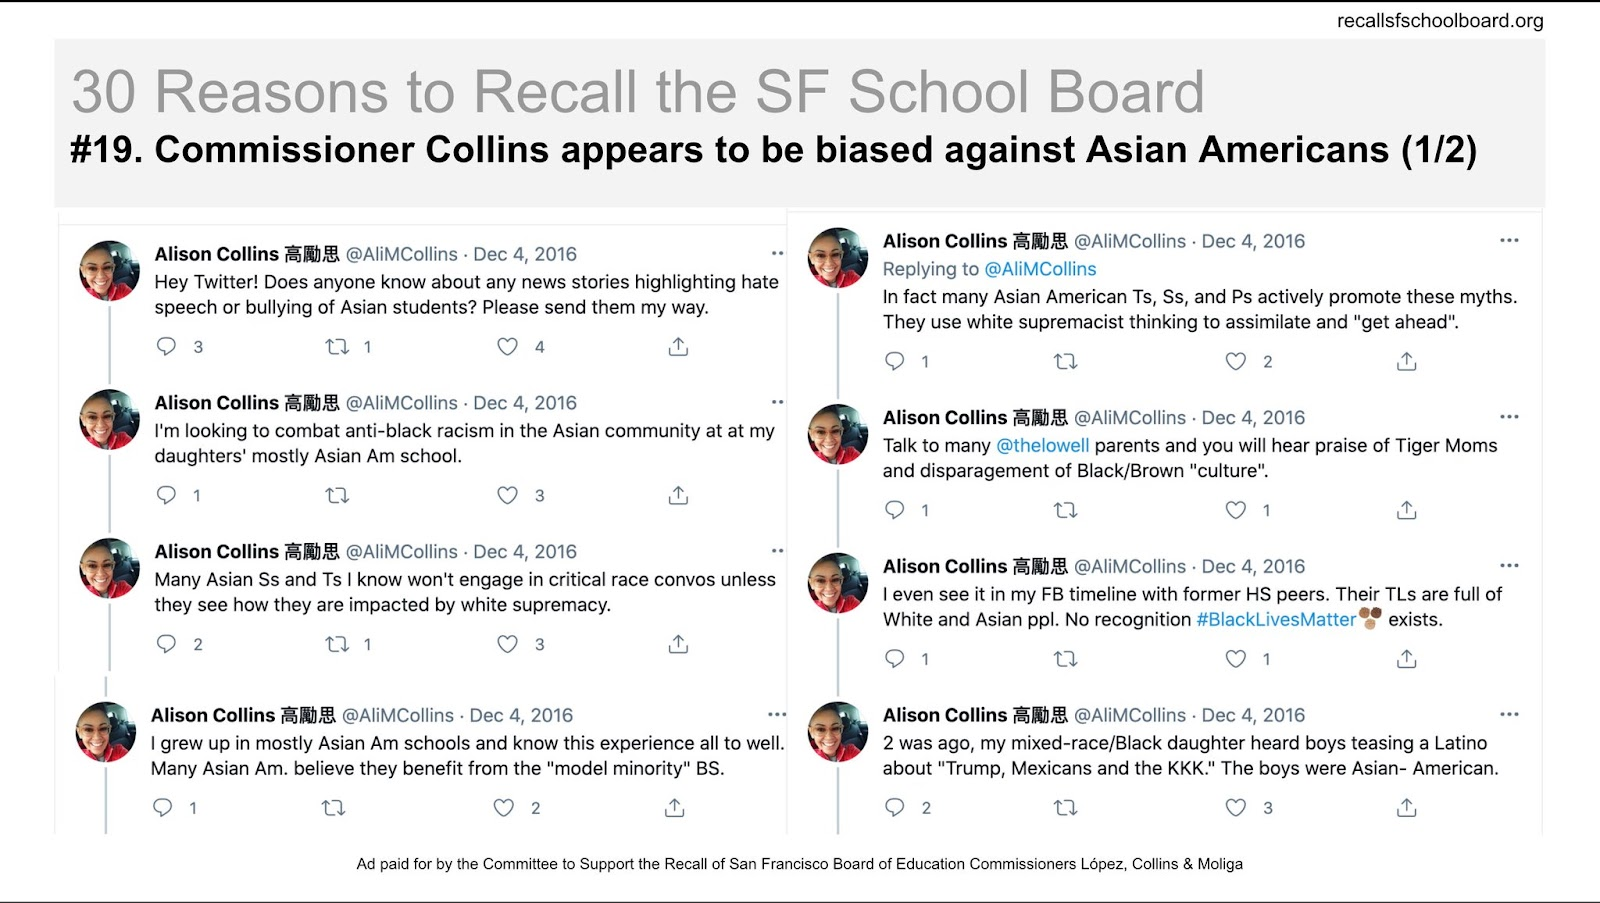 """Recall SF School Board on Twitter: """"30 REASONS TO RECALL THE SF SCHOOL  BOARD 19. Commissioner Collins appears biased against Asian Americans  https://t.co/lX2Q0IhFyw… https://t.co/vv1wMsl0WD"""""""